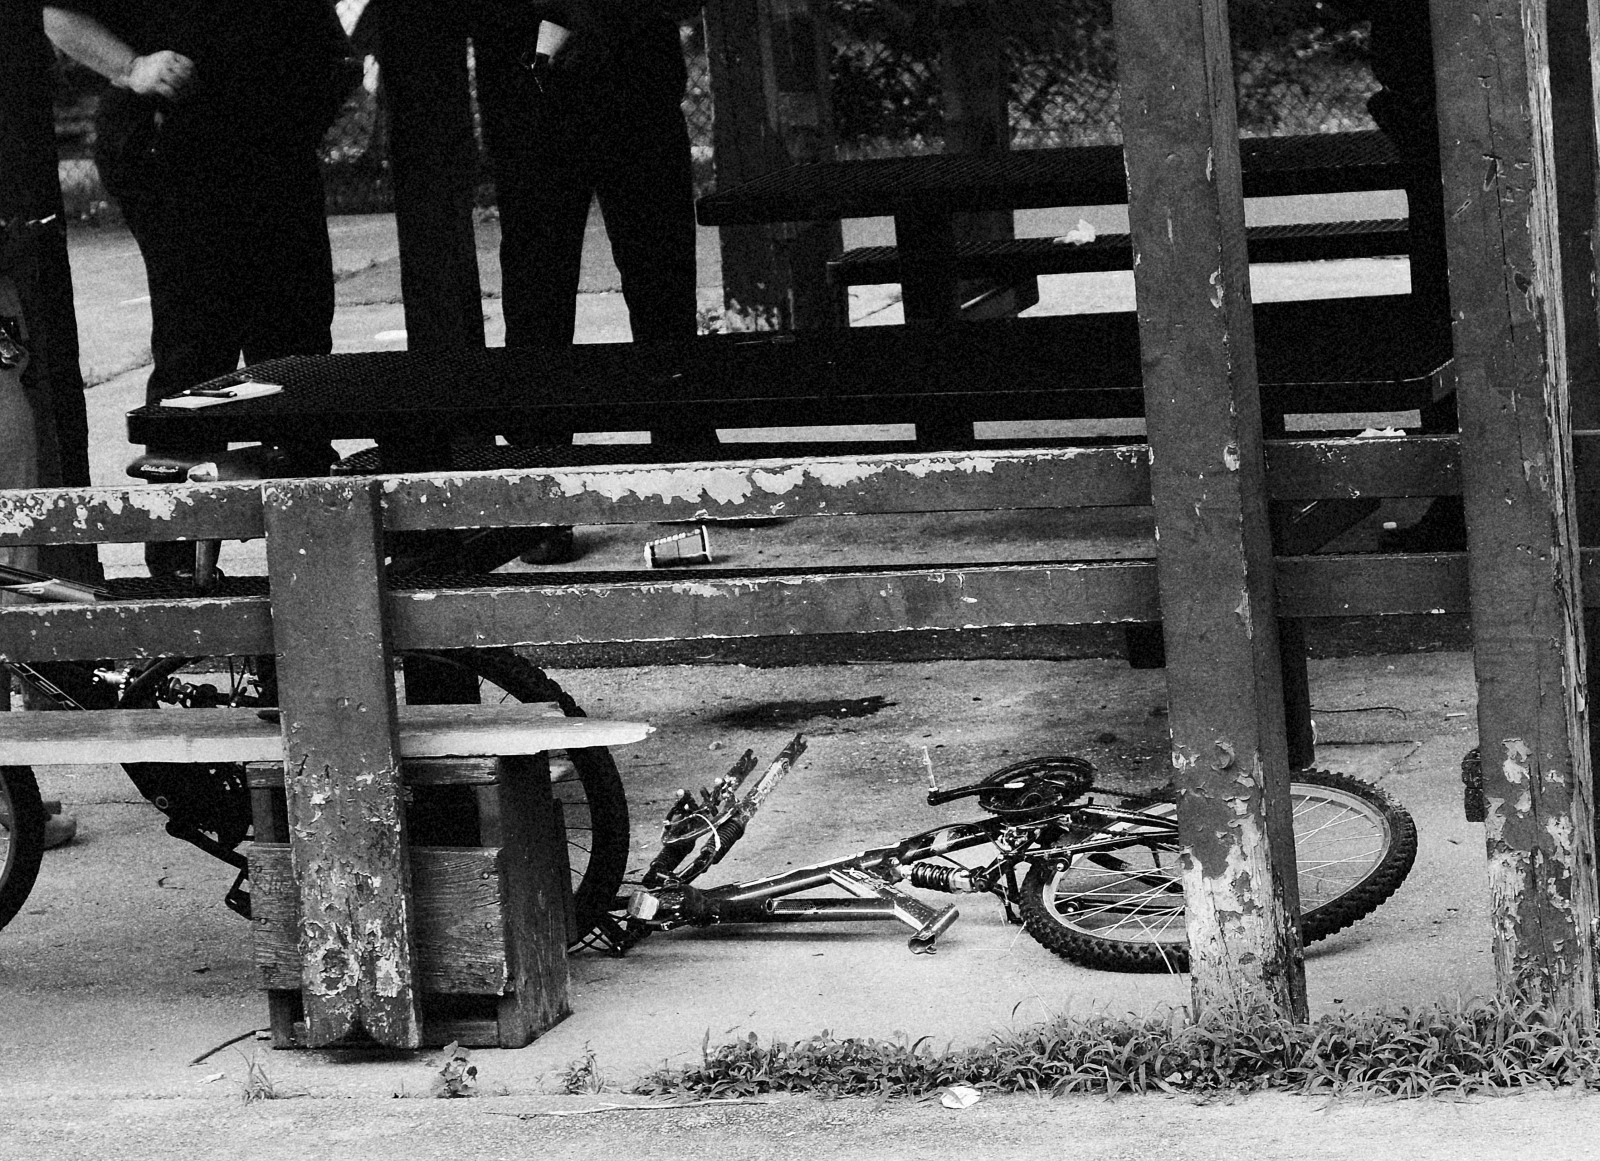 The bicycle of an eight-year-old shot by another child at a playground on Willow and Alhambra avenues in Northeast Baltimore on July 1, 2013.